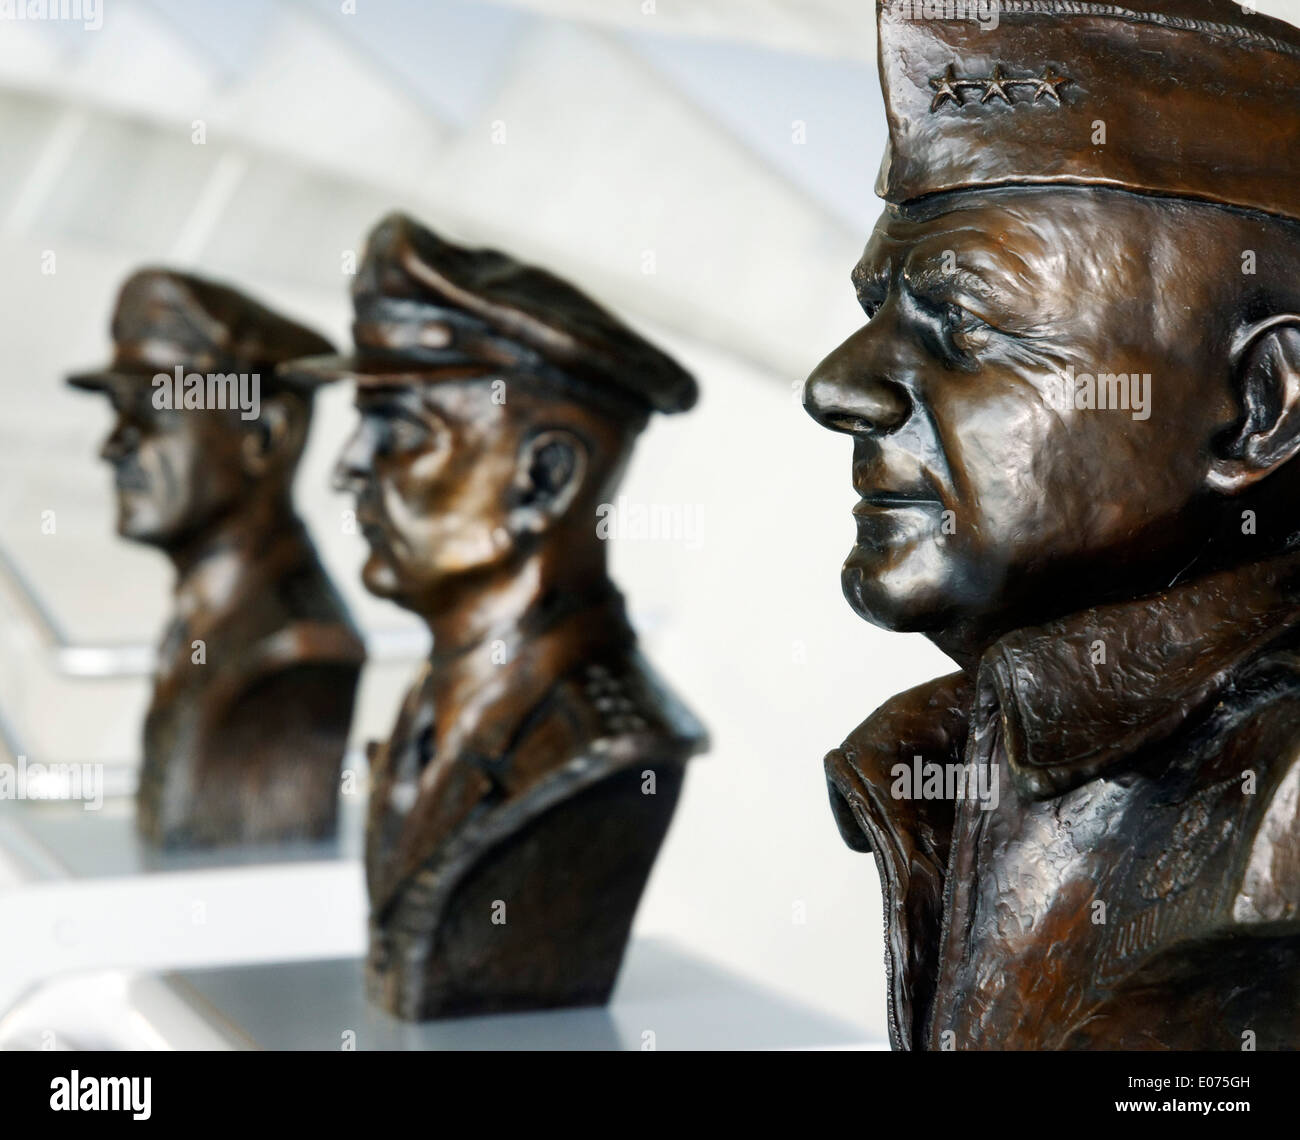 Busts of USAF Eighth Air Force commander James Doolittle, Carl Spaatz and Ira Eaker at Duxford Air Museum, England - Stock Image